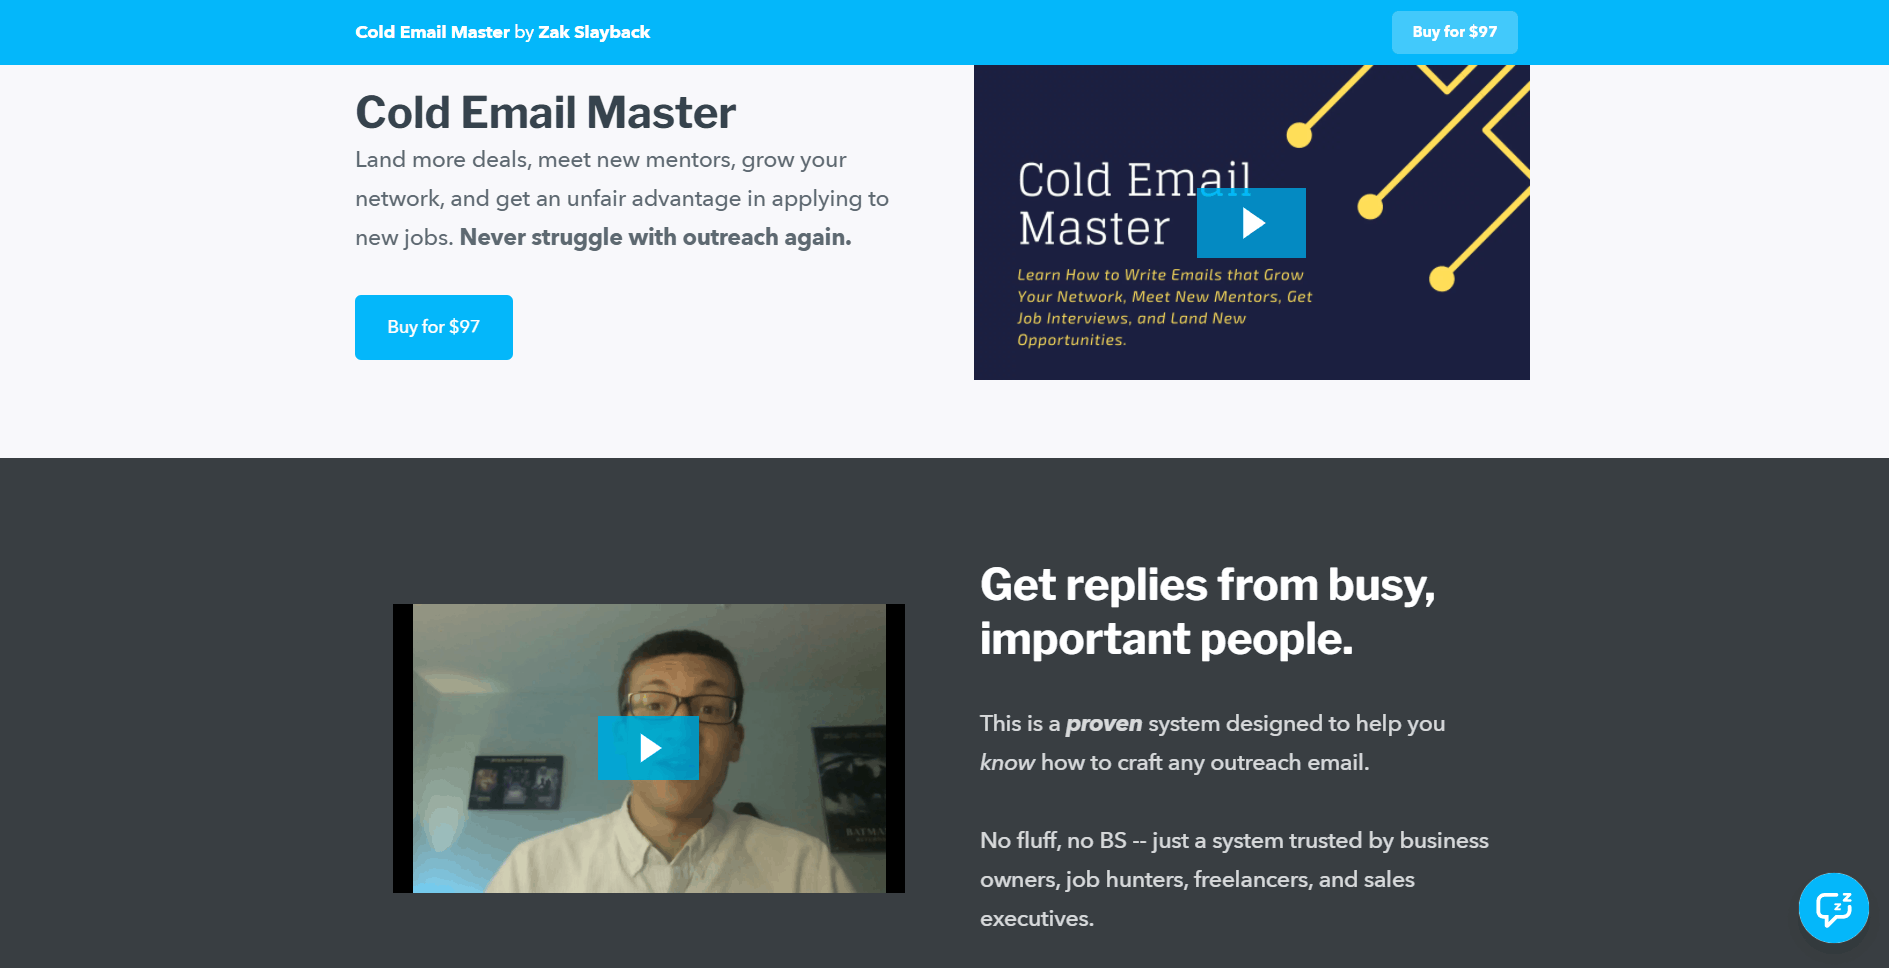 Cold Email Master